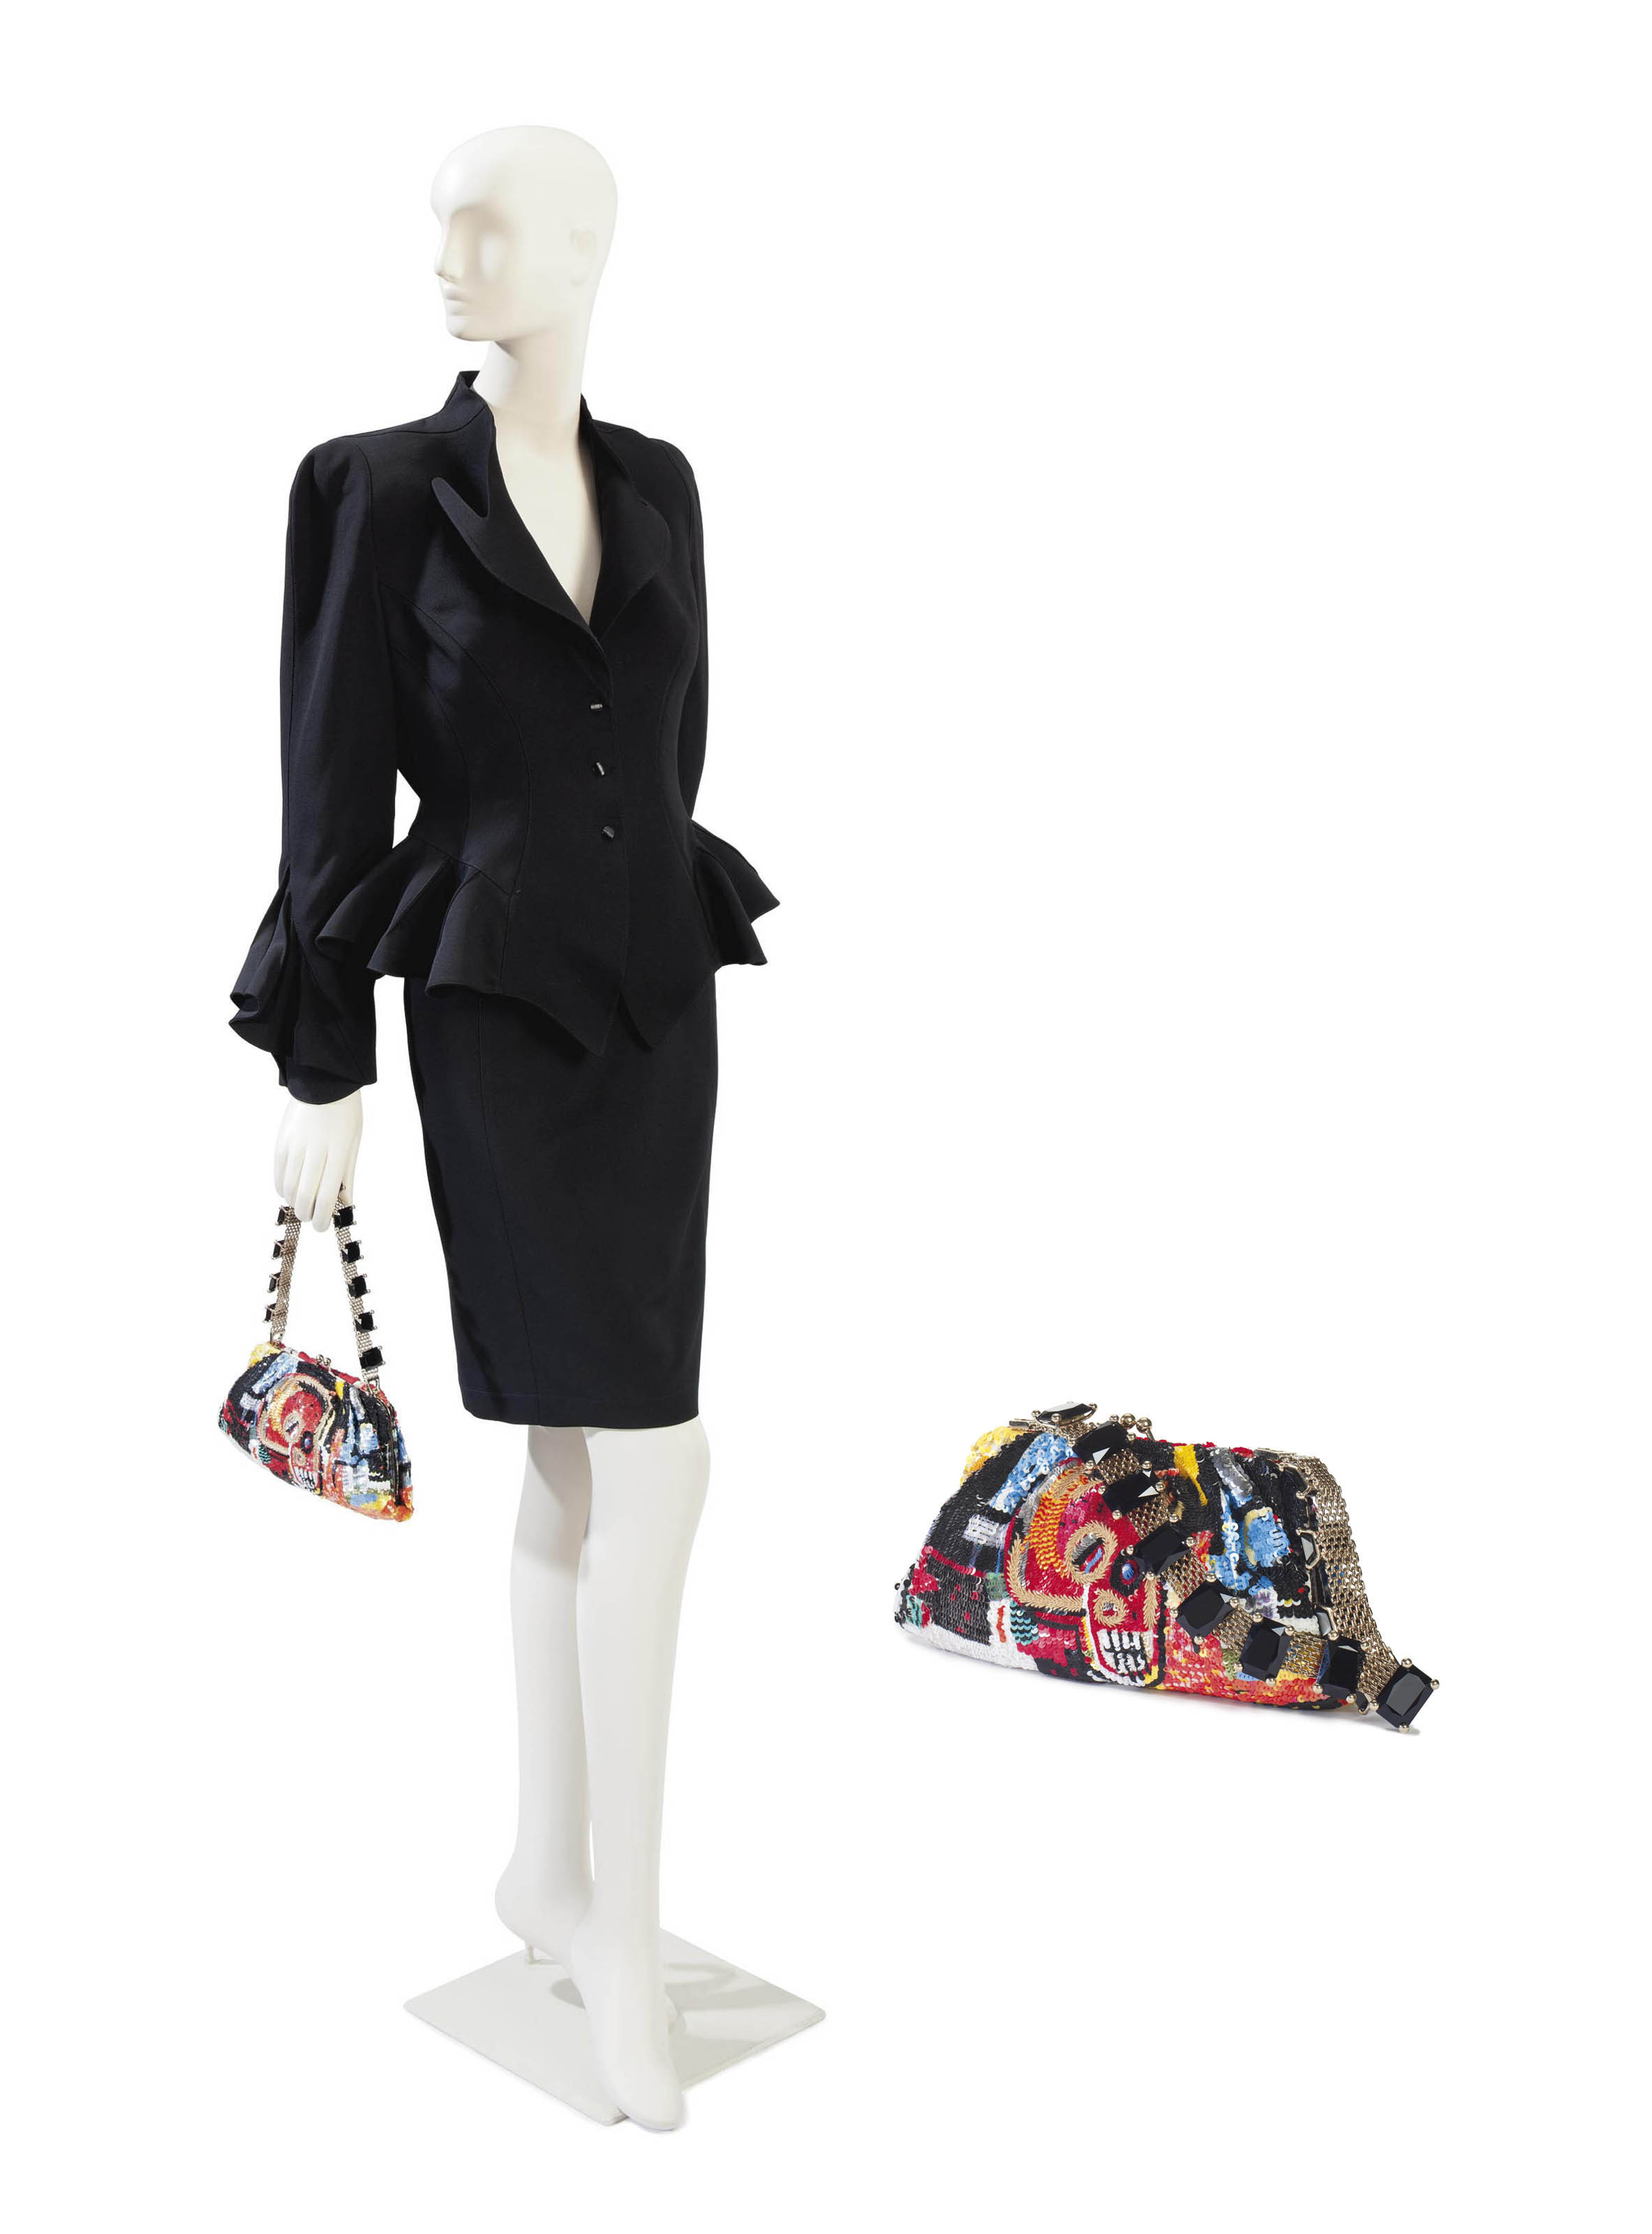 A THIERRY MUGLER BLACK WOOL SUIT AND A VALENTINO SEQUINNED HANDBAG